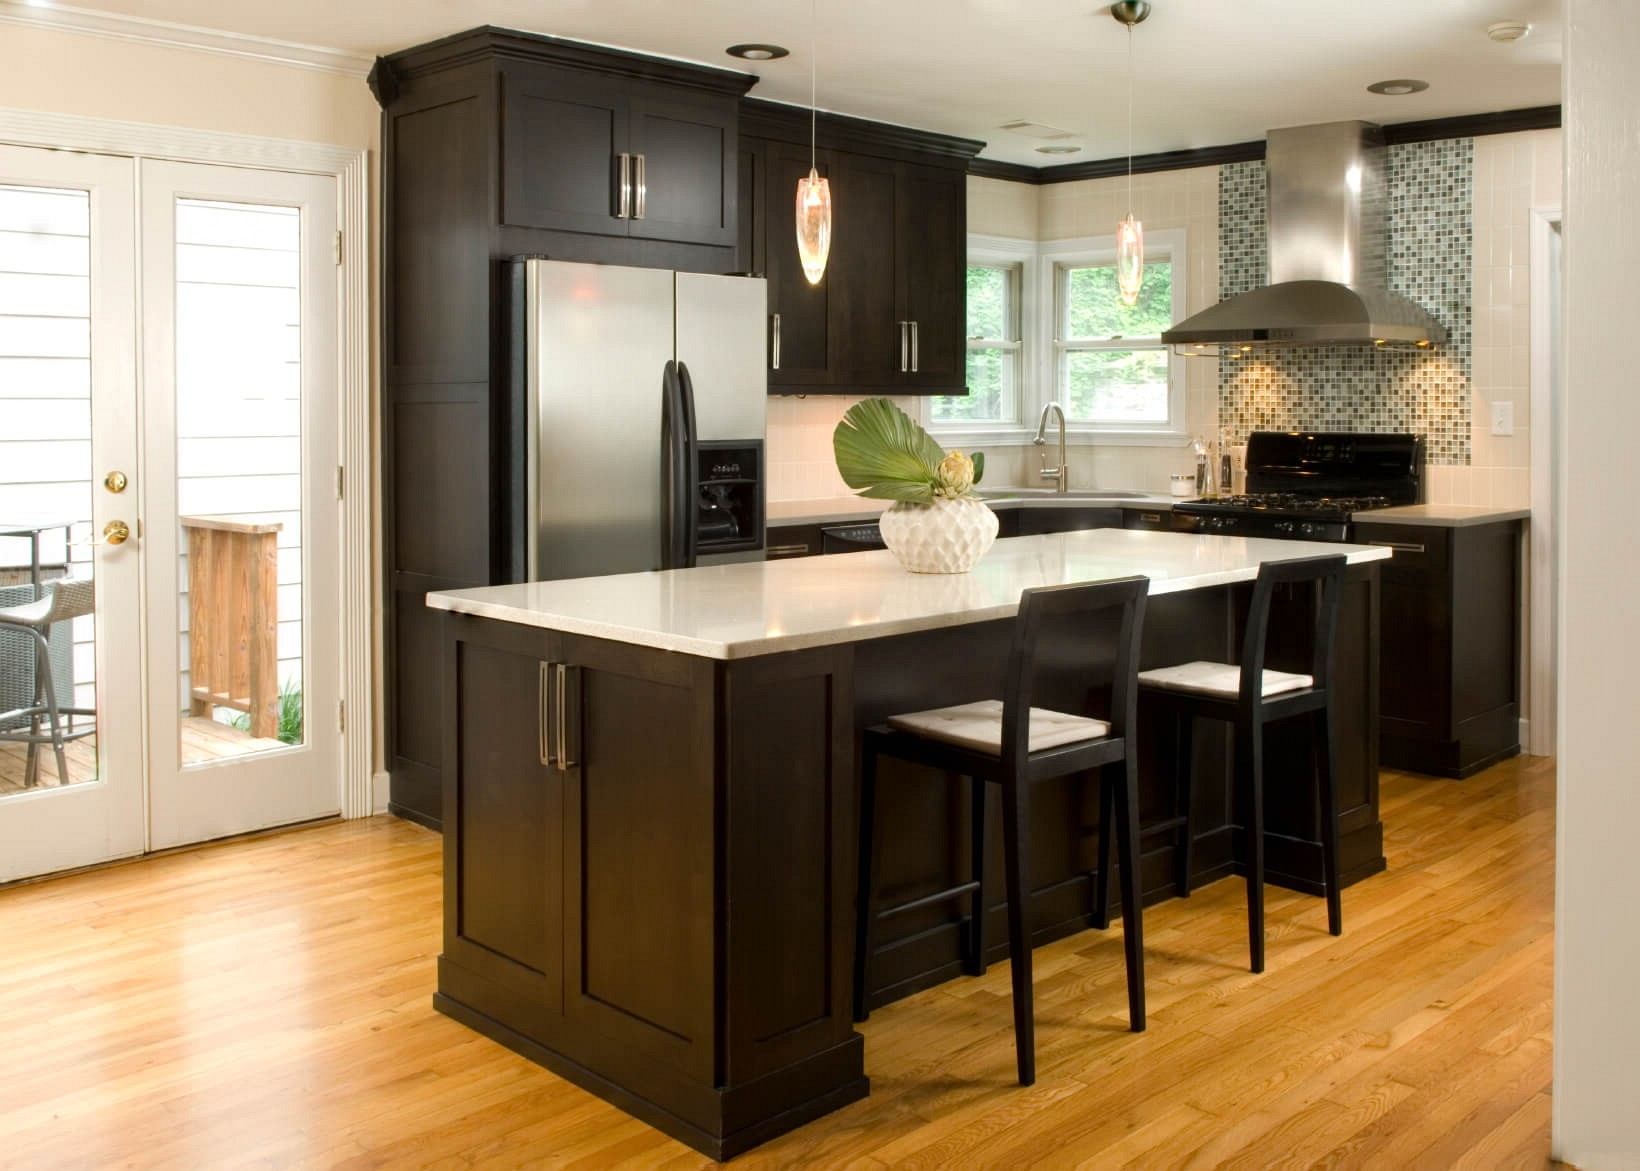 Kitchens With Light Wood Floors And Dark Cabinets